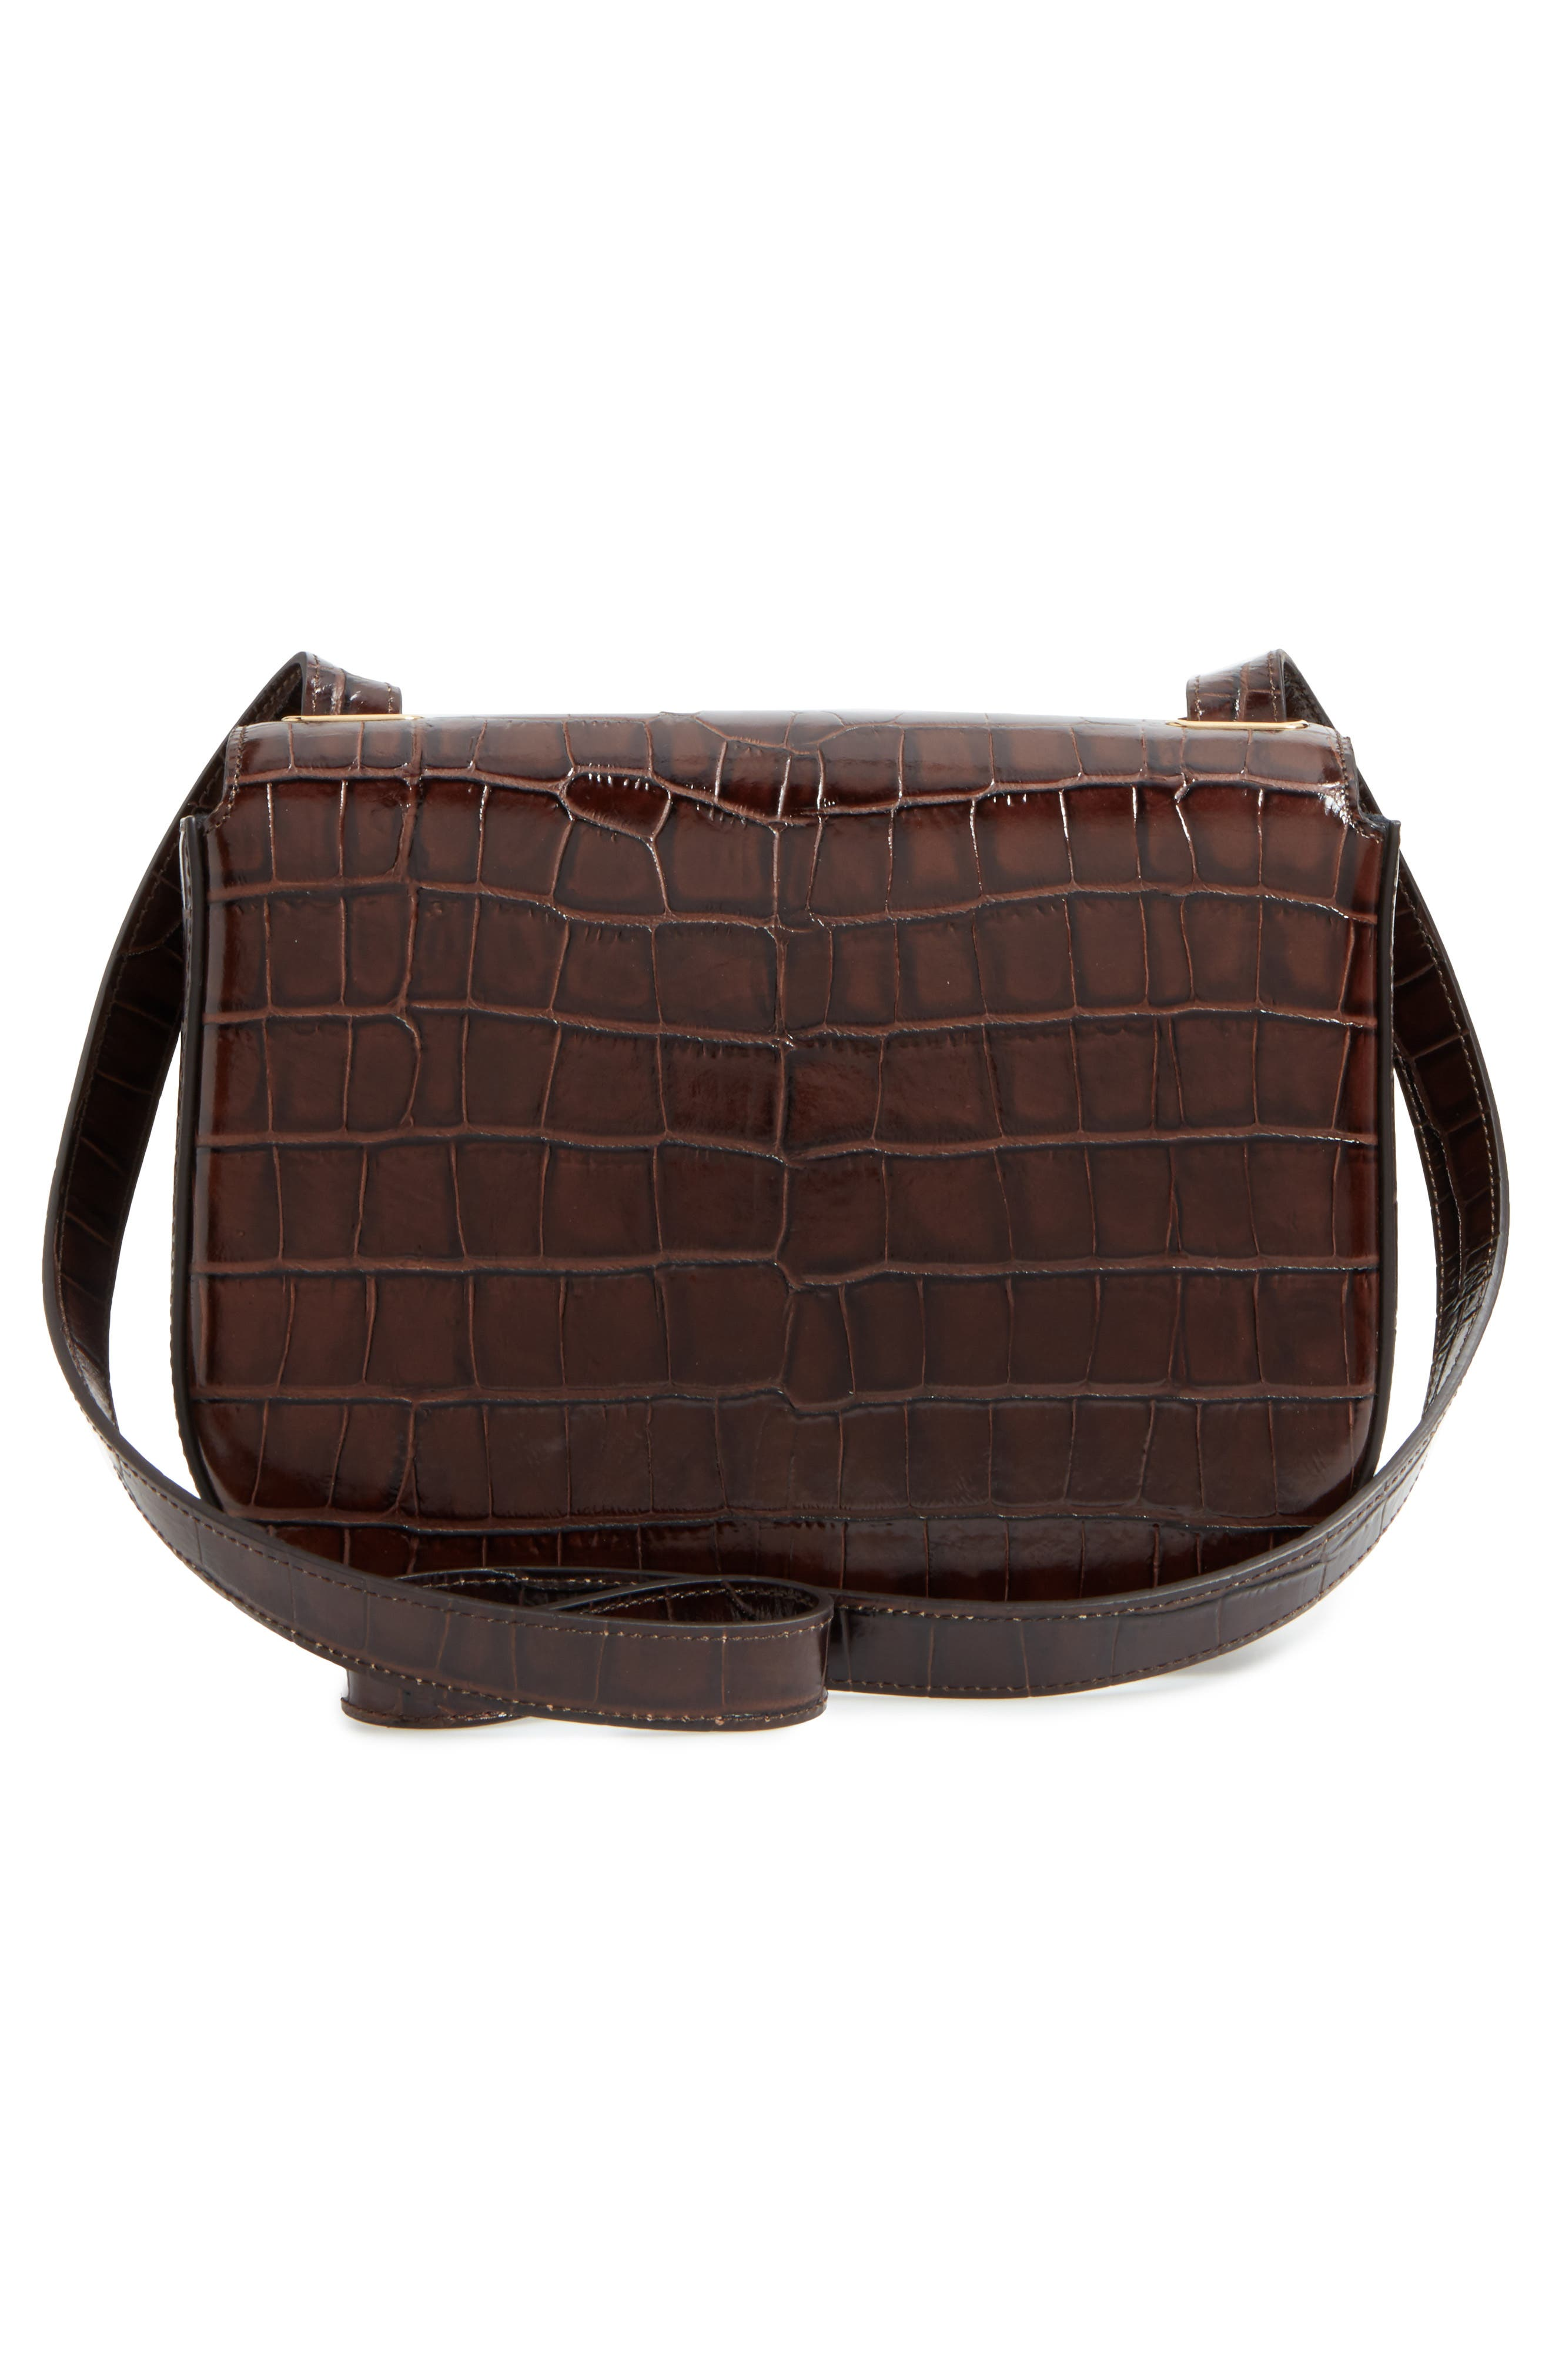 MULBERRY,                             Selwood Leather Saddle Bag,                             Alternate thumbnail 3, color,                             200